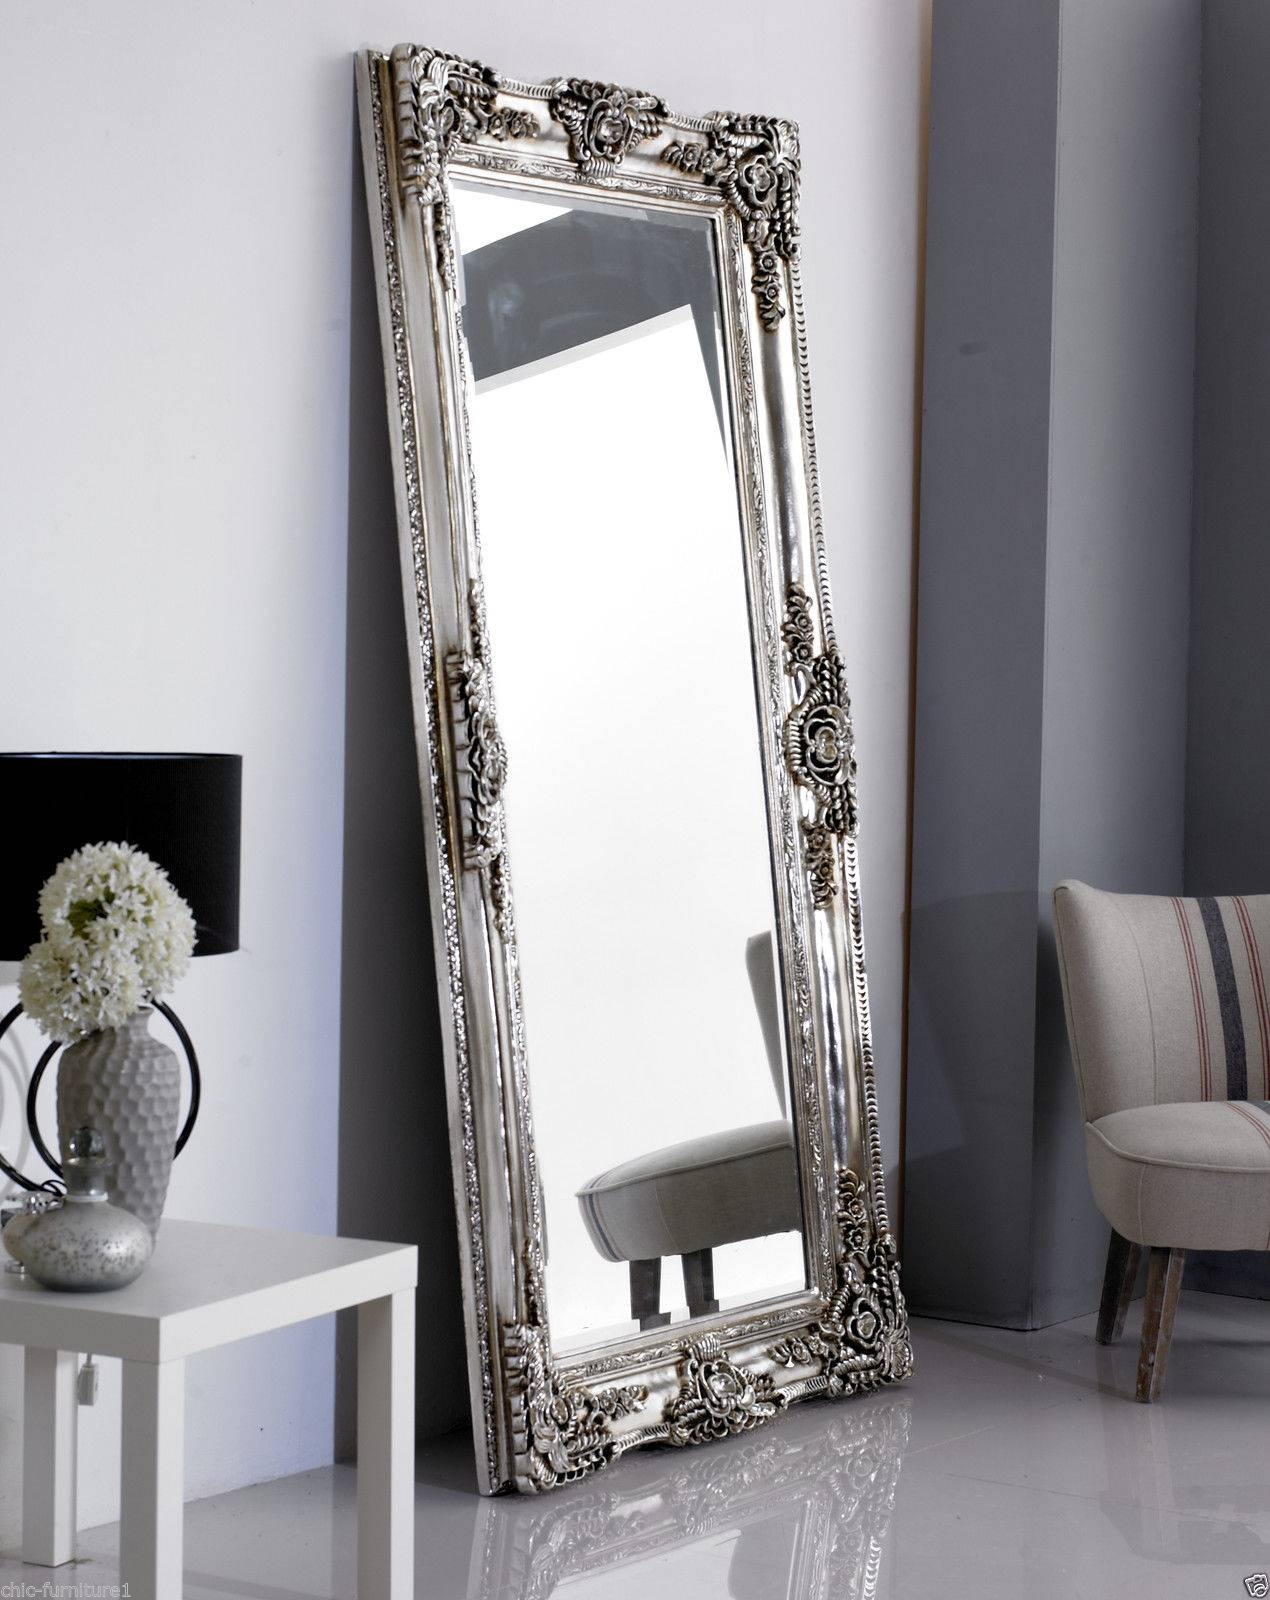 New!!! Large Rocco Leaner Silver Ornate Wall Mirror - 200X100Cm | Ebay with Silver Ornate Framed Mirrors (Image 13 of 25)